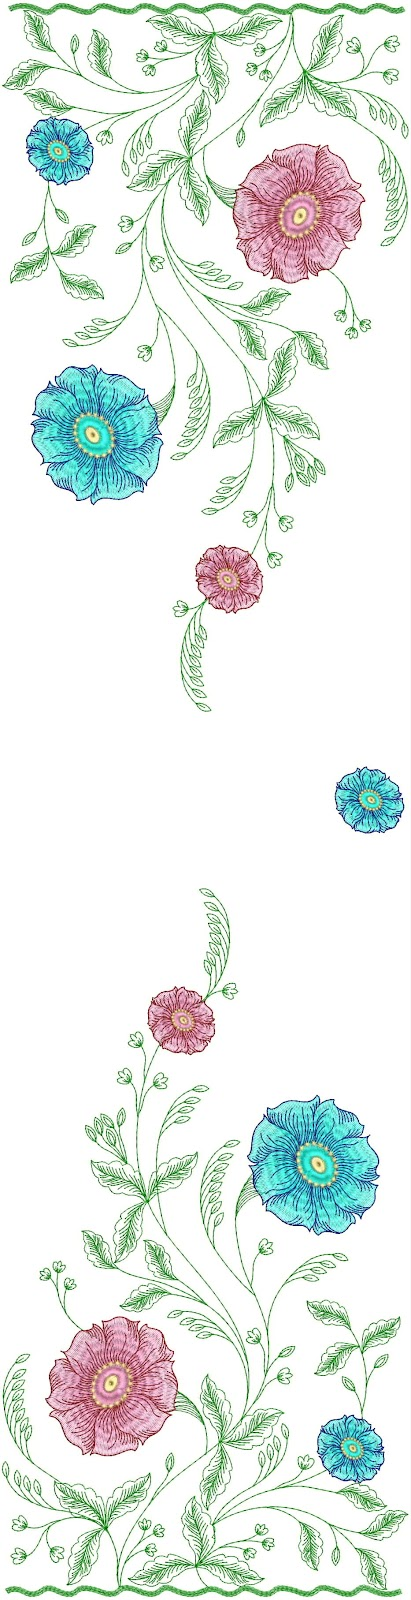 Embdesigntube floral dupatta embroidery designs